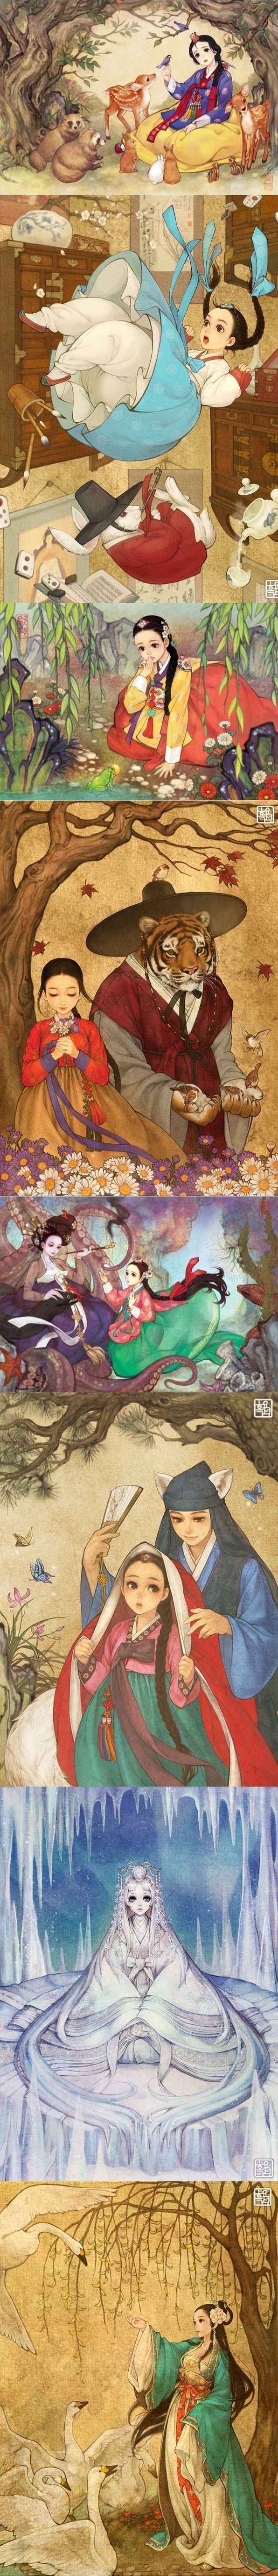 Korean illustrator, Na Young Wu (also known as @00obsidian00 on Twitter), gives Western fairy tales a whimsical Eastern makeover ~ Snow White, Alice in Wonderland, Princess and the Frog, Beauty and the Beast, Little Mermaid, Little Red Riding Hood, Frozen, and Swan Princess.: